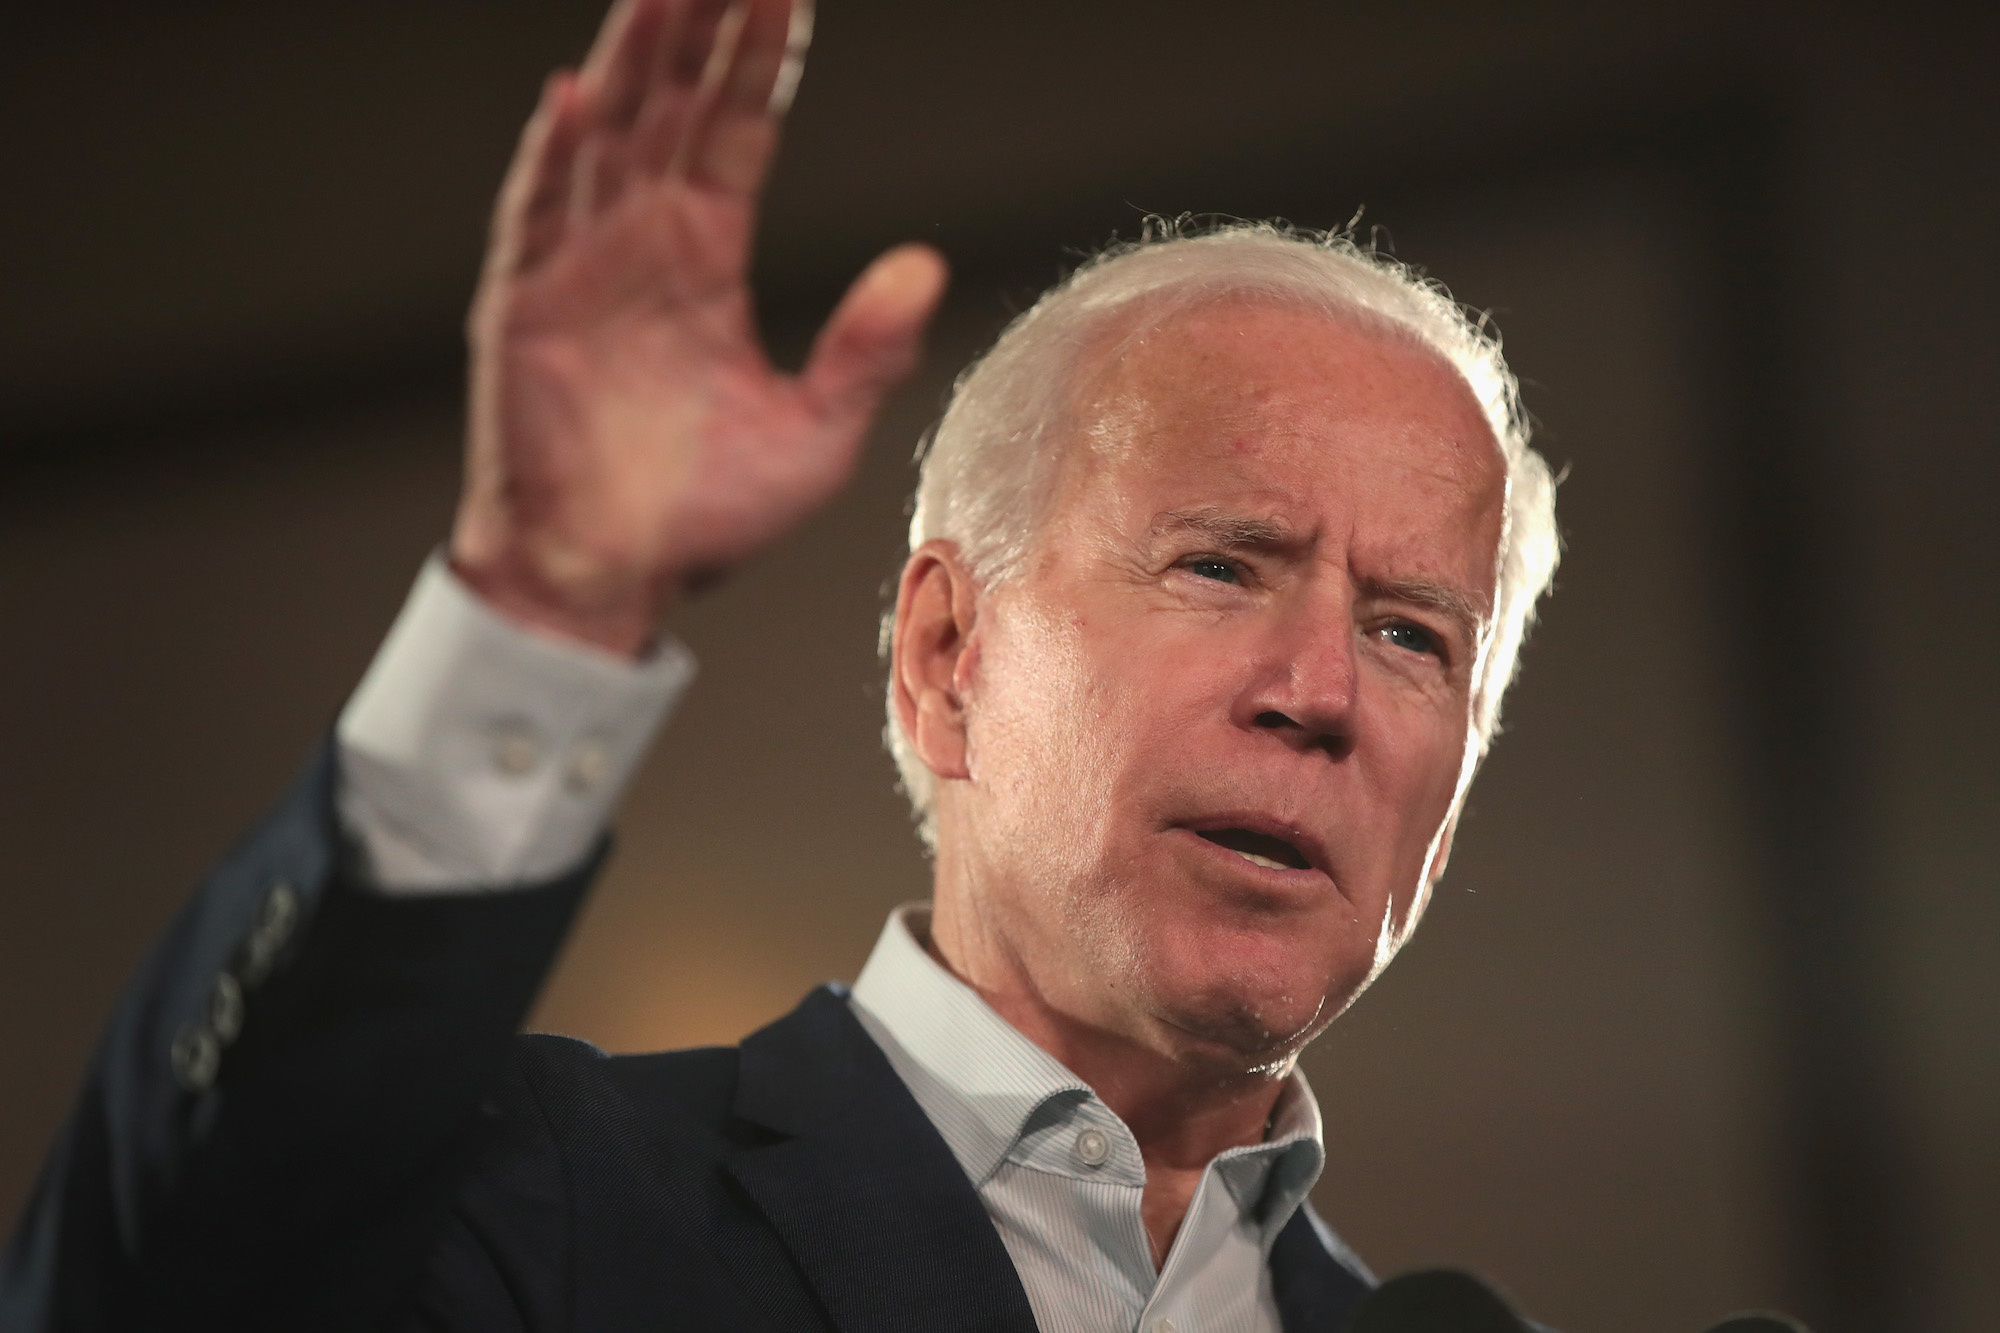 Joe Biden claims world leaders are begging him to 'save the world' and run against President Trump